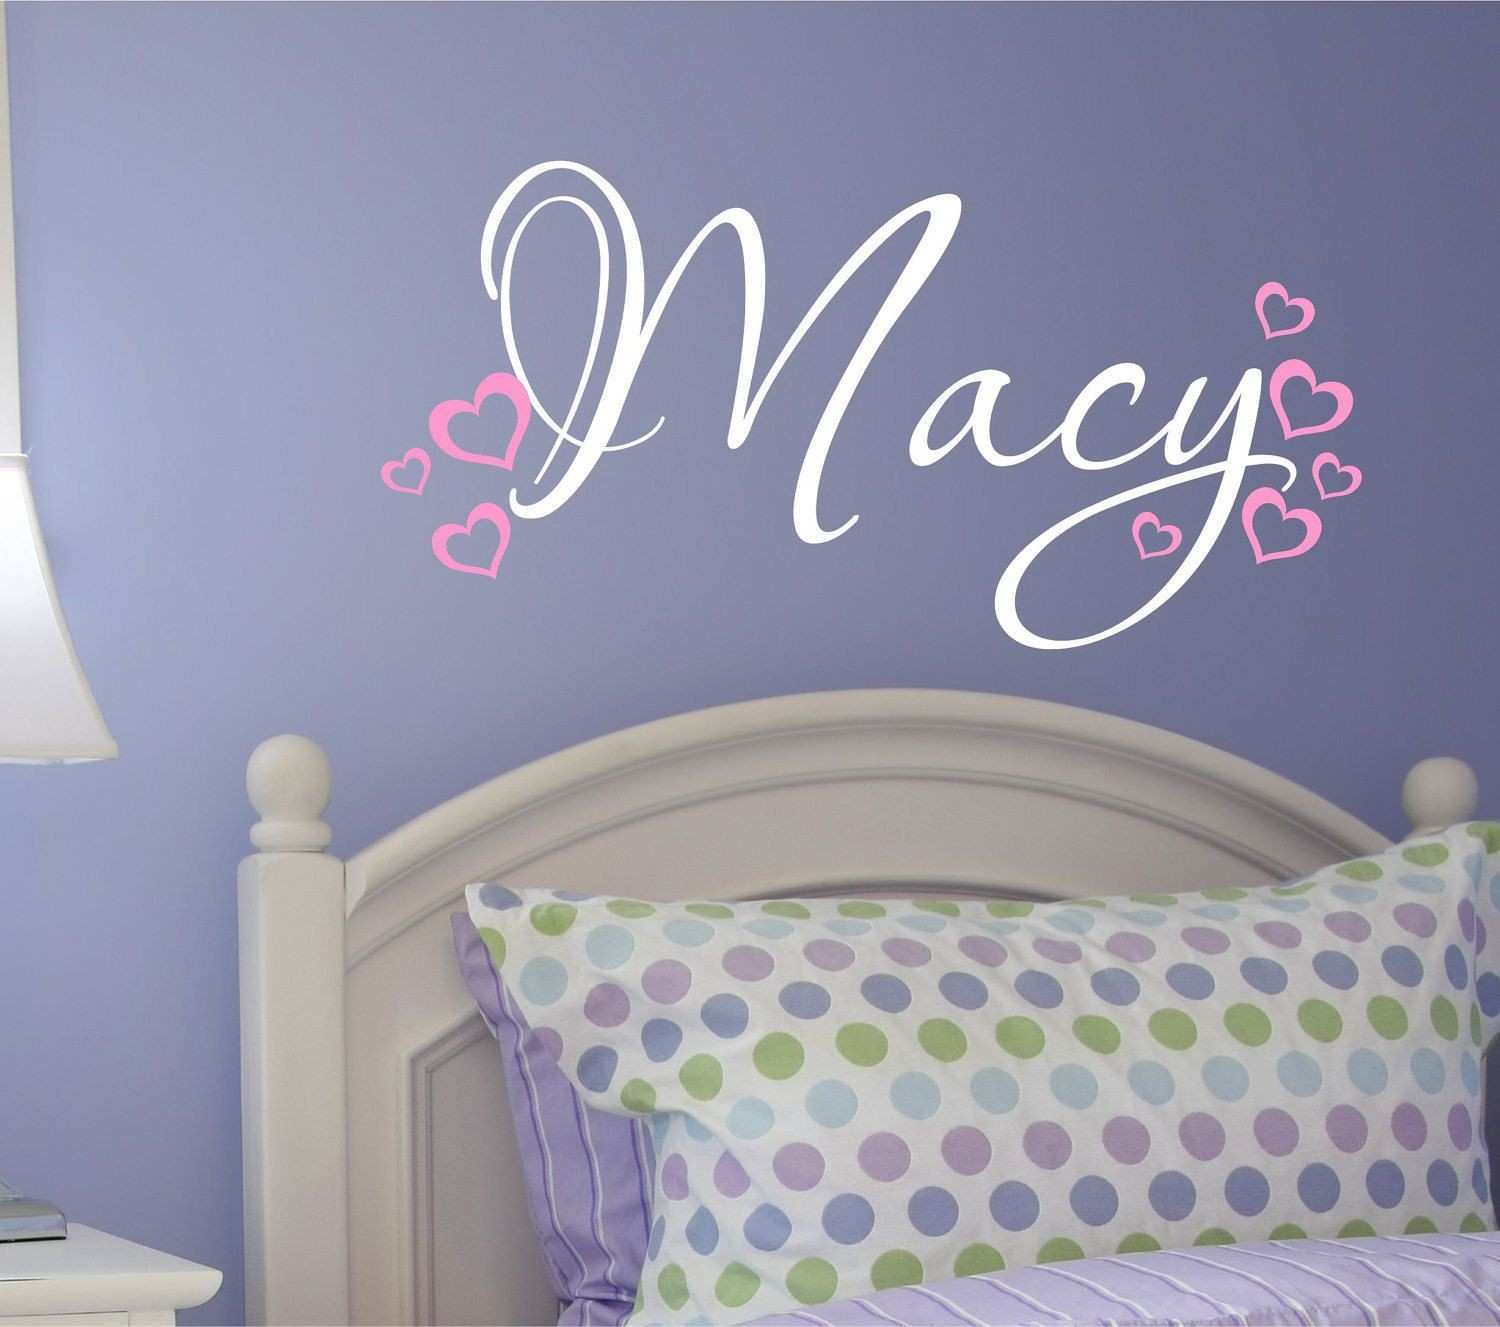 Toddler Girl Wall Decals Awesome Nursery Wall Decal Custom Name Vinyl Wall Decal Heart Wall Decal